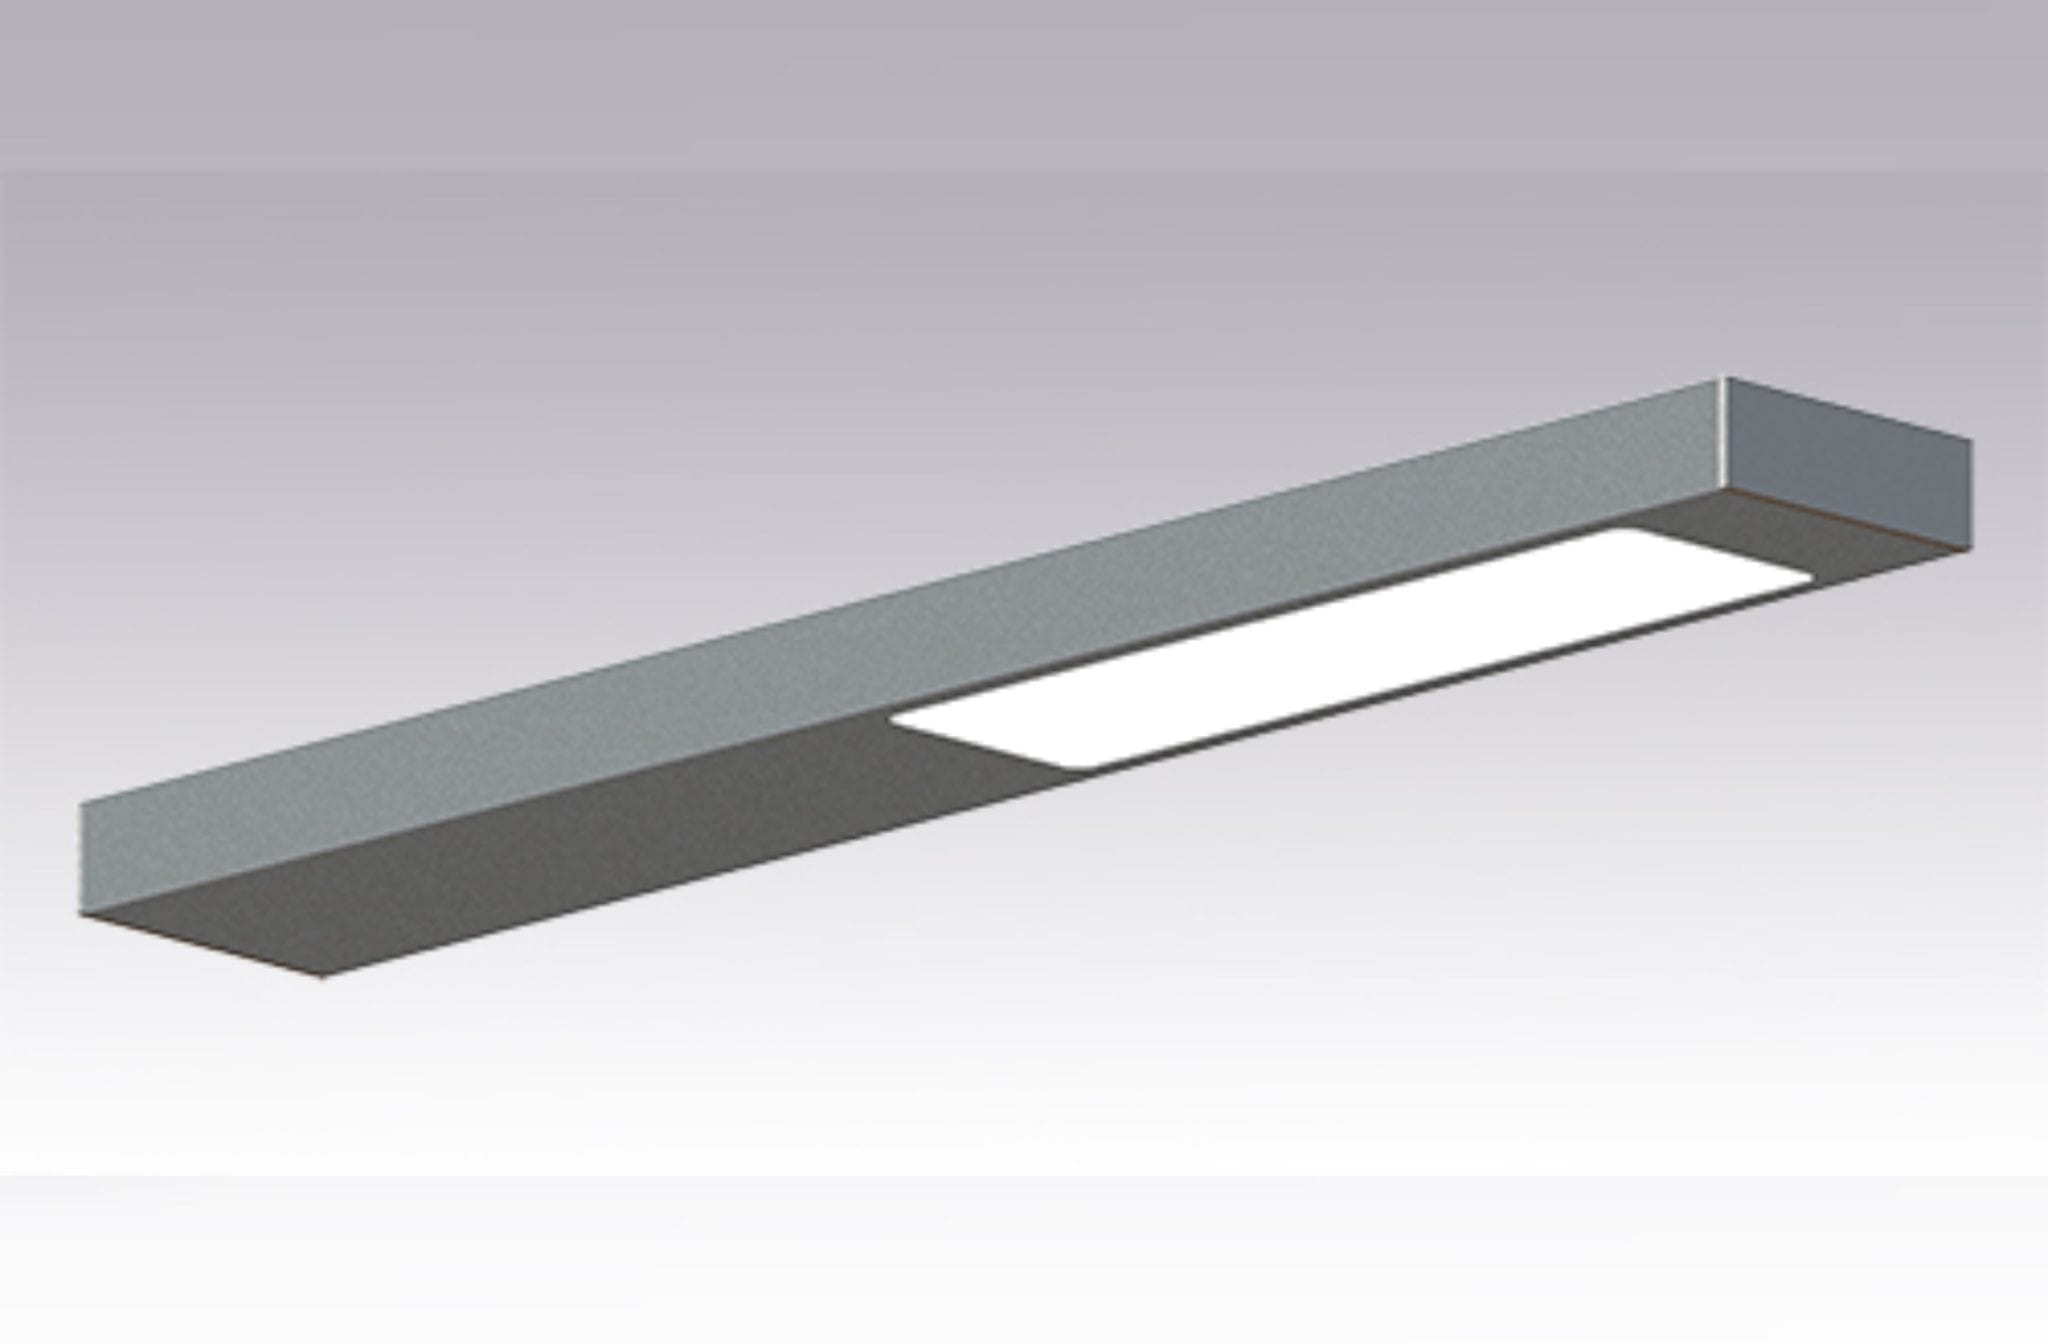 Loevschall LED spot Slim Line LED | Illuminor as